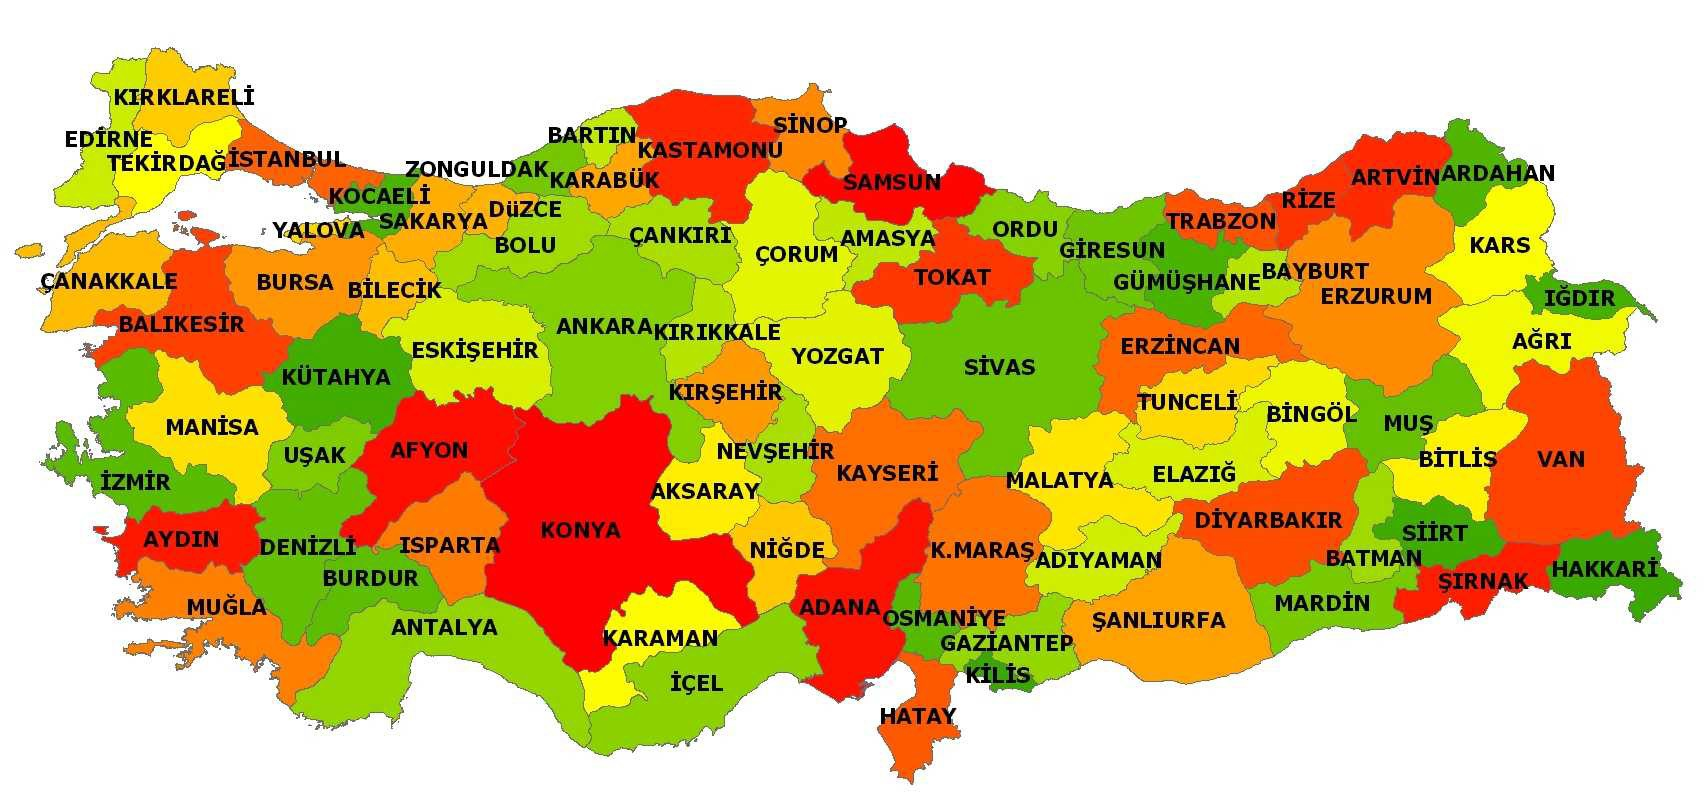 Turkey Population (2013) : 76 667 864 population growth rate (per mille) : 13,66